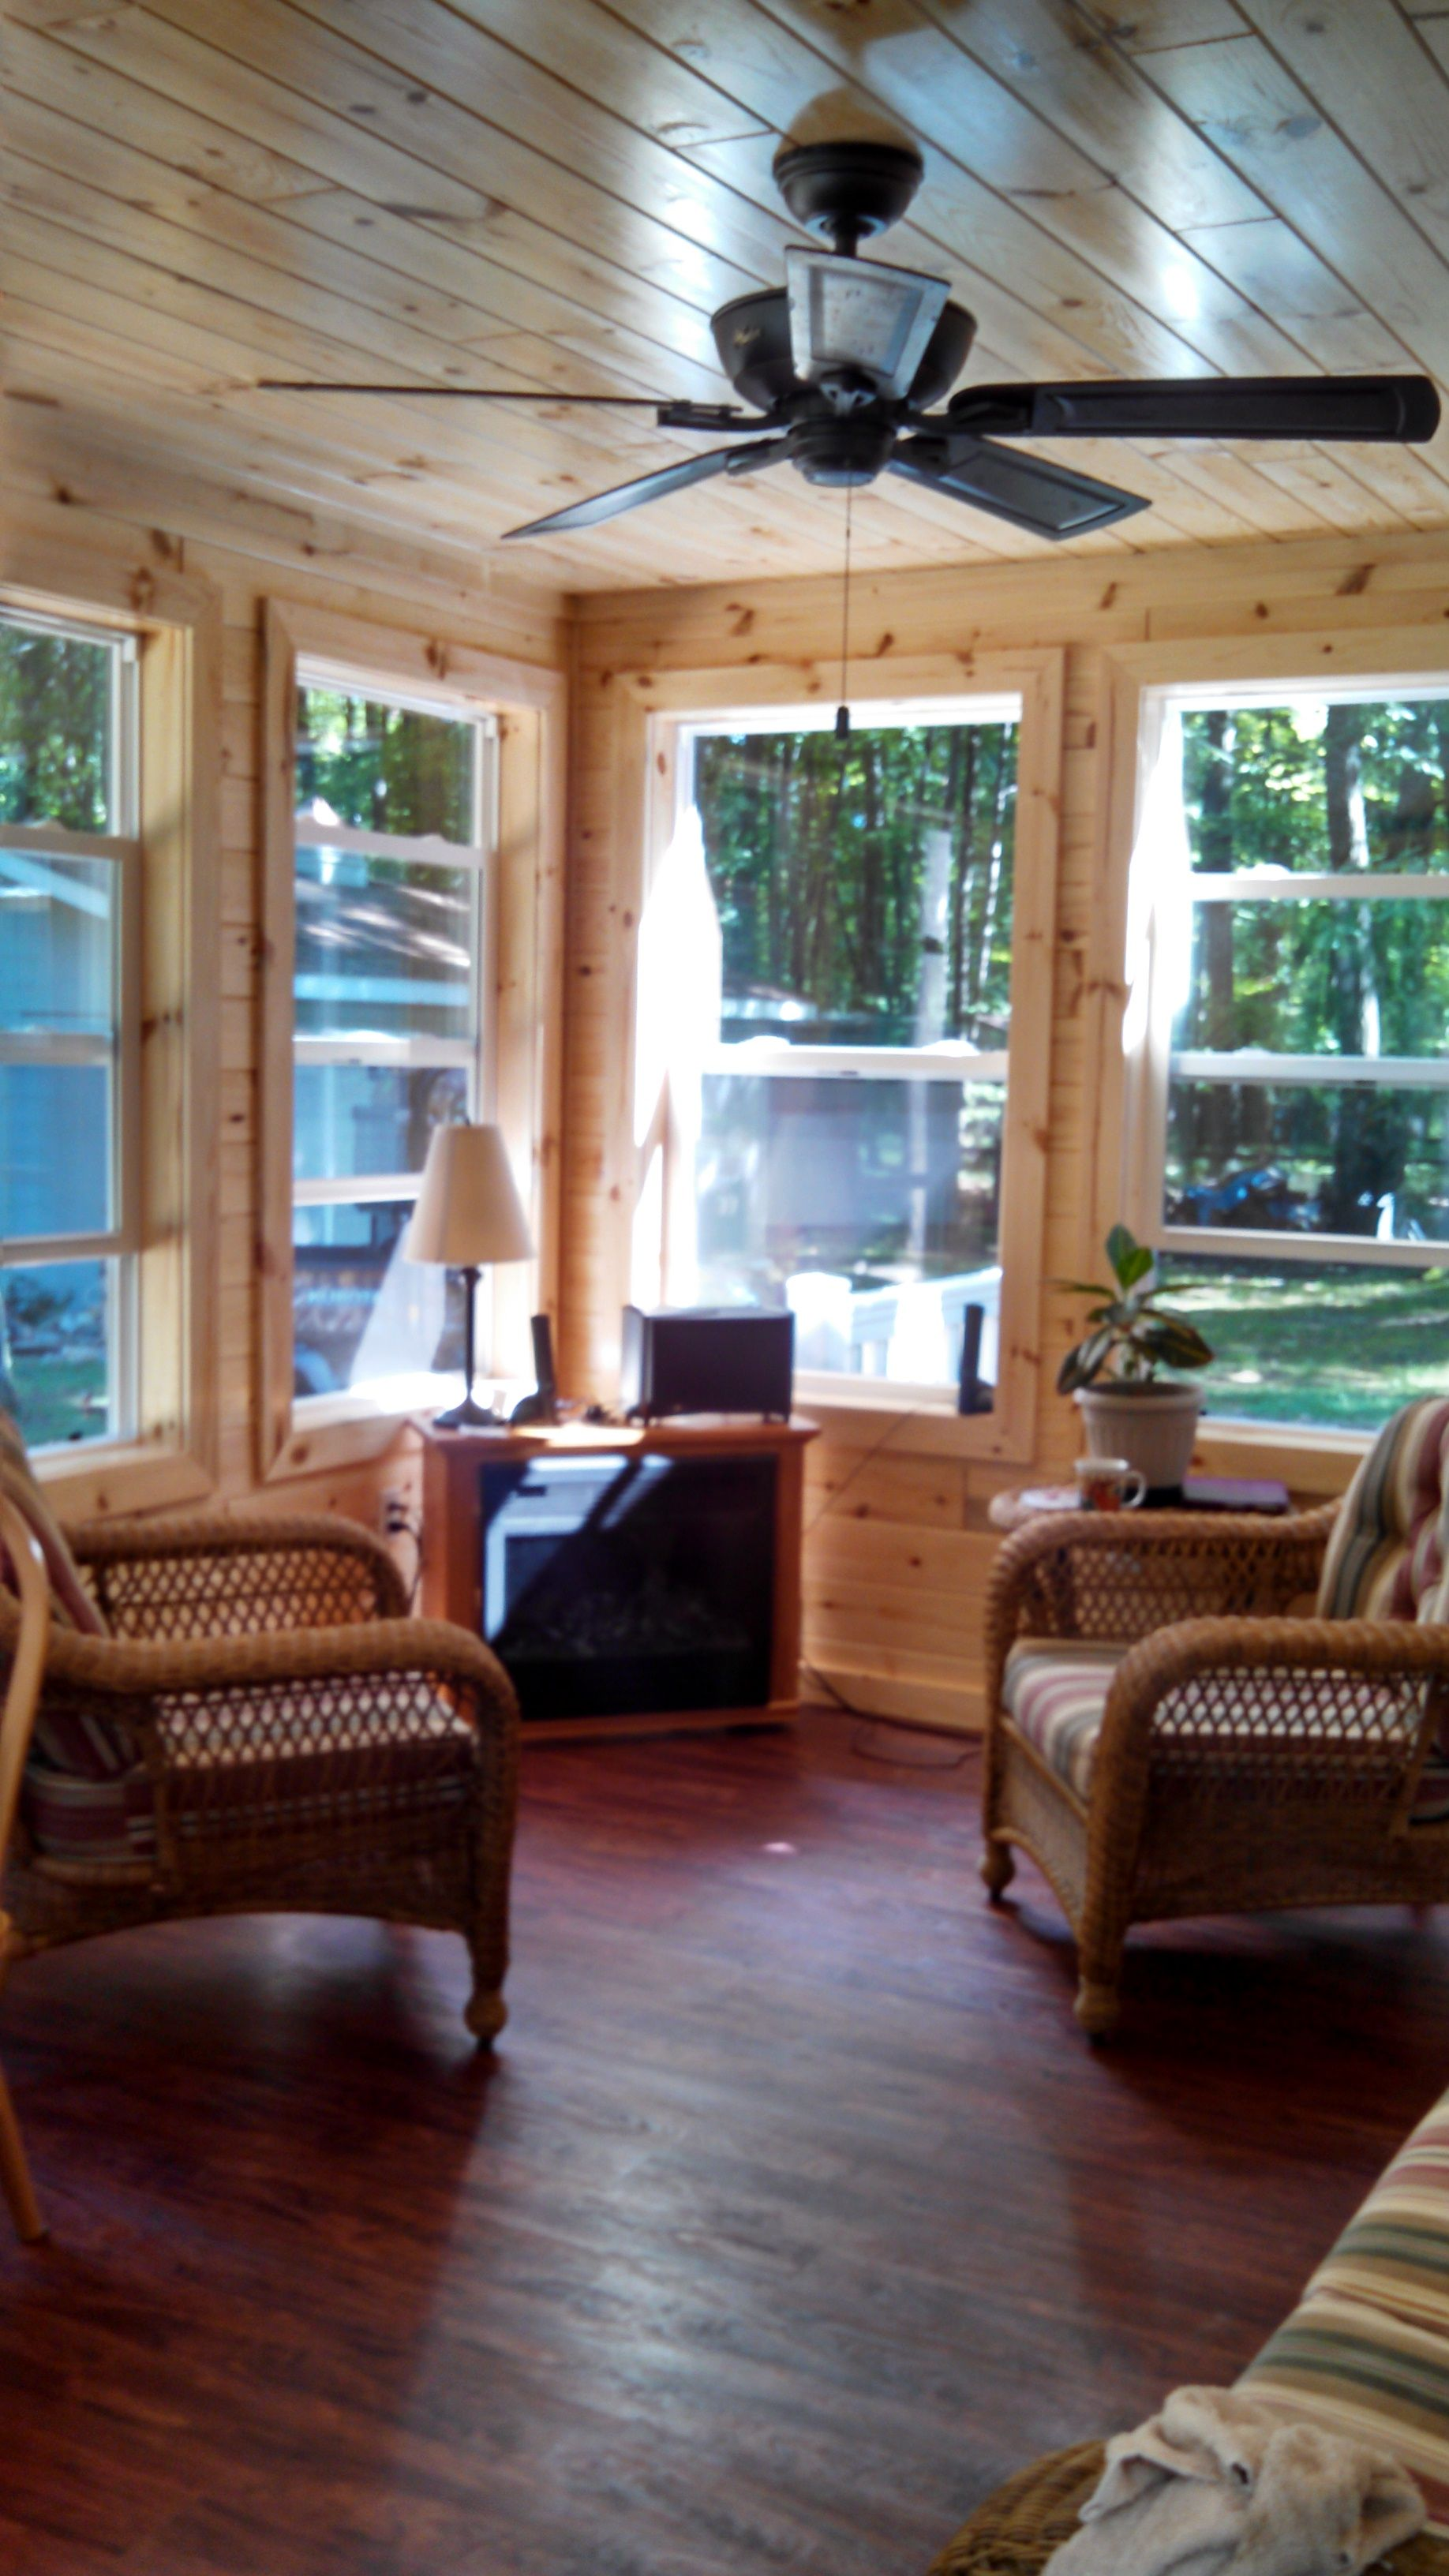 Knotty Pine Sunroom Small Sunroom Indoor Porch Rustic Sunroom